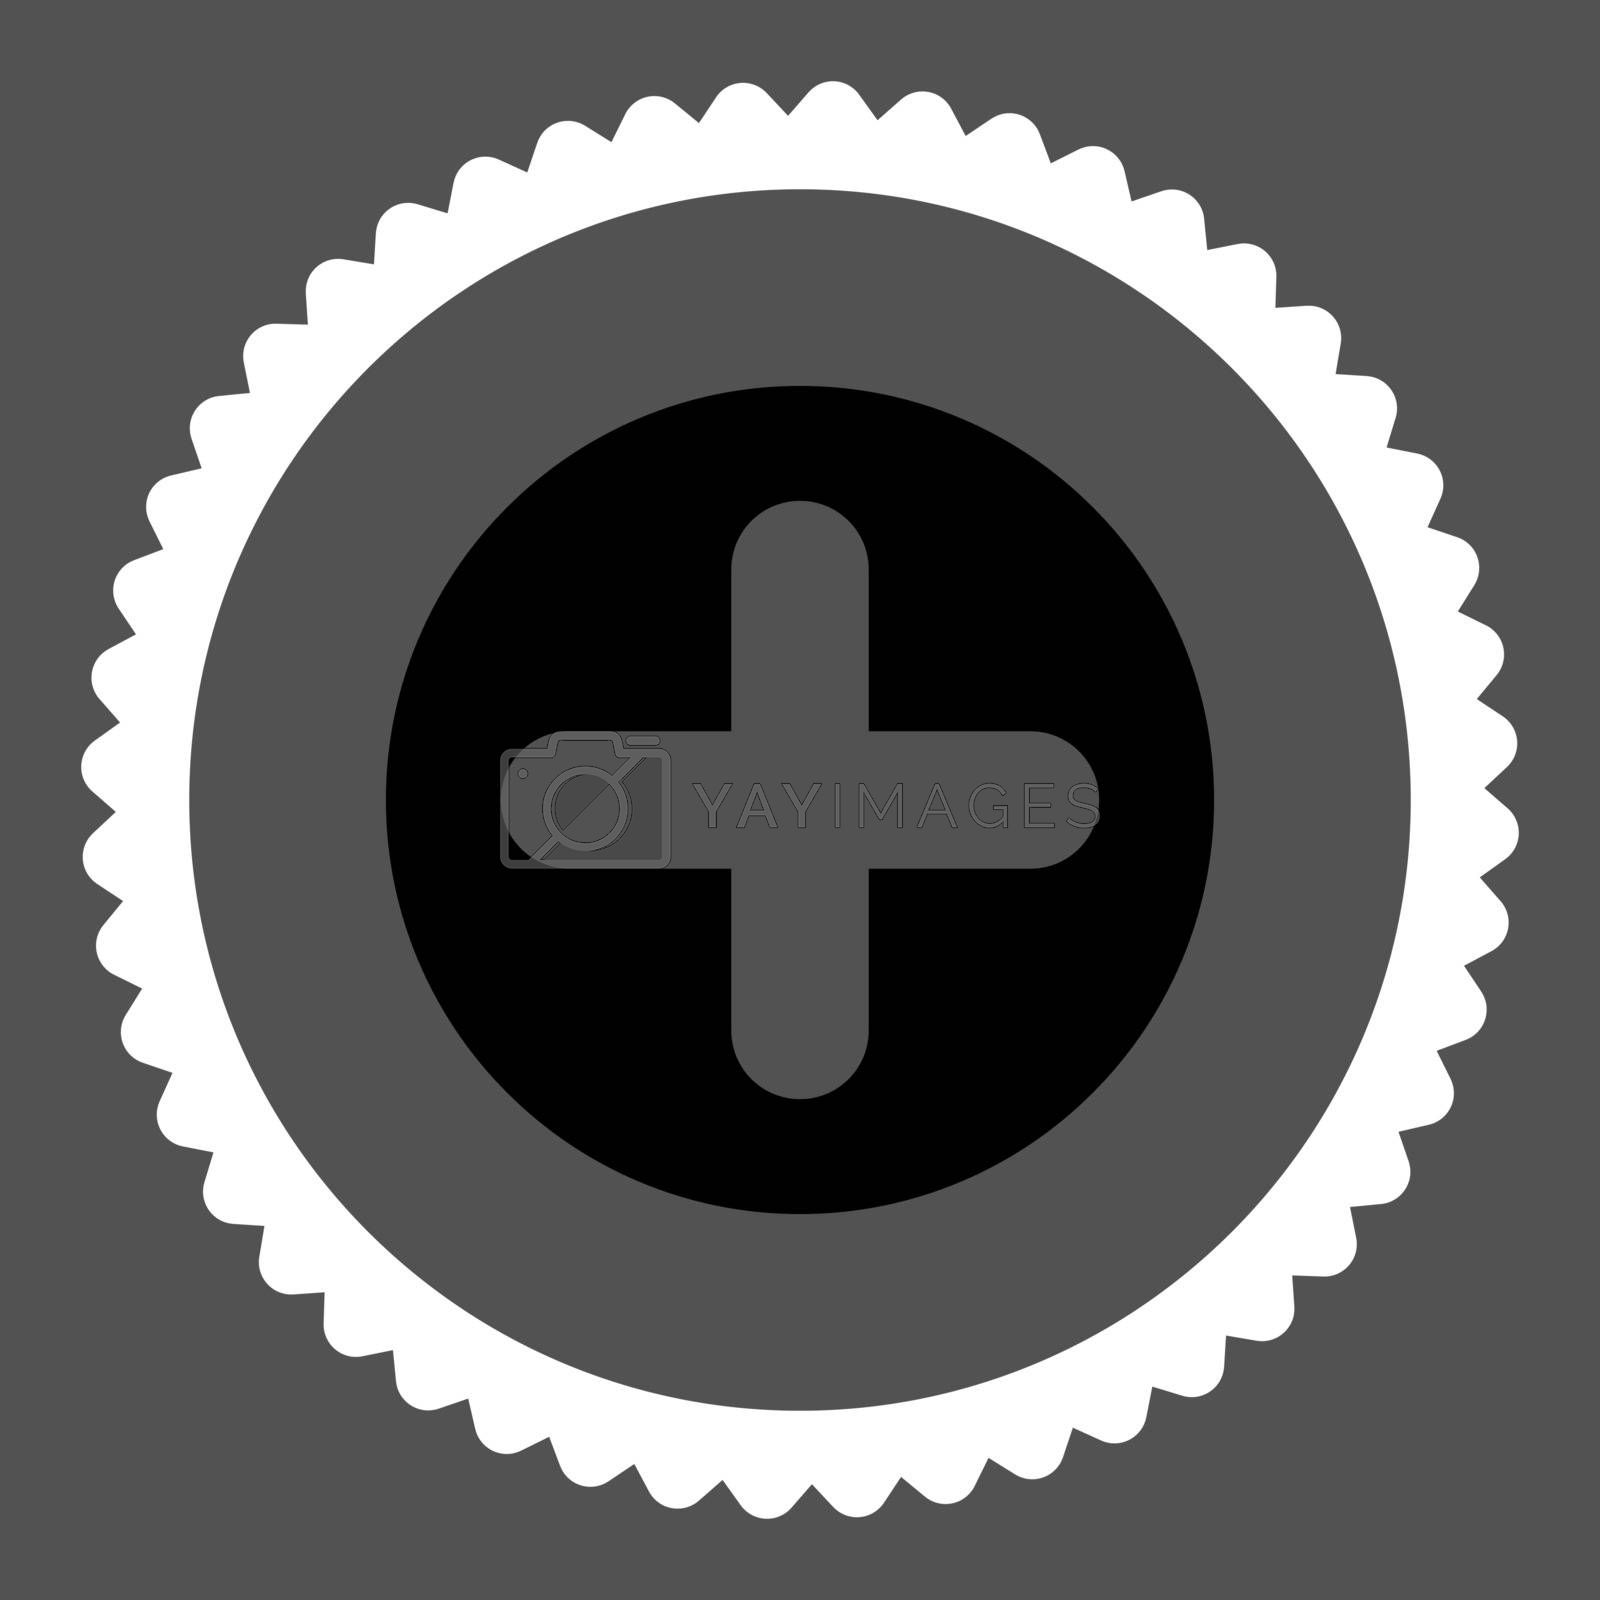 Create flat black and white colors round stamp icon by Aha-Soft